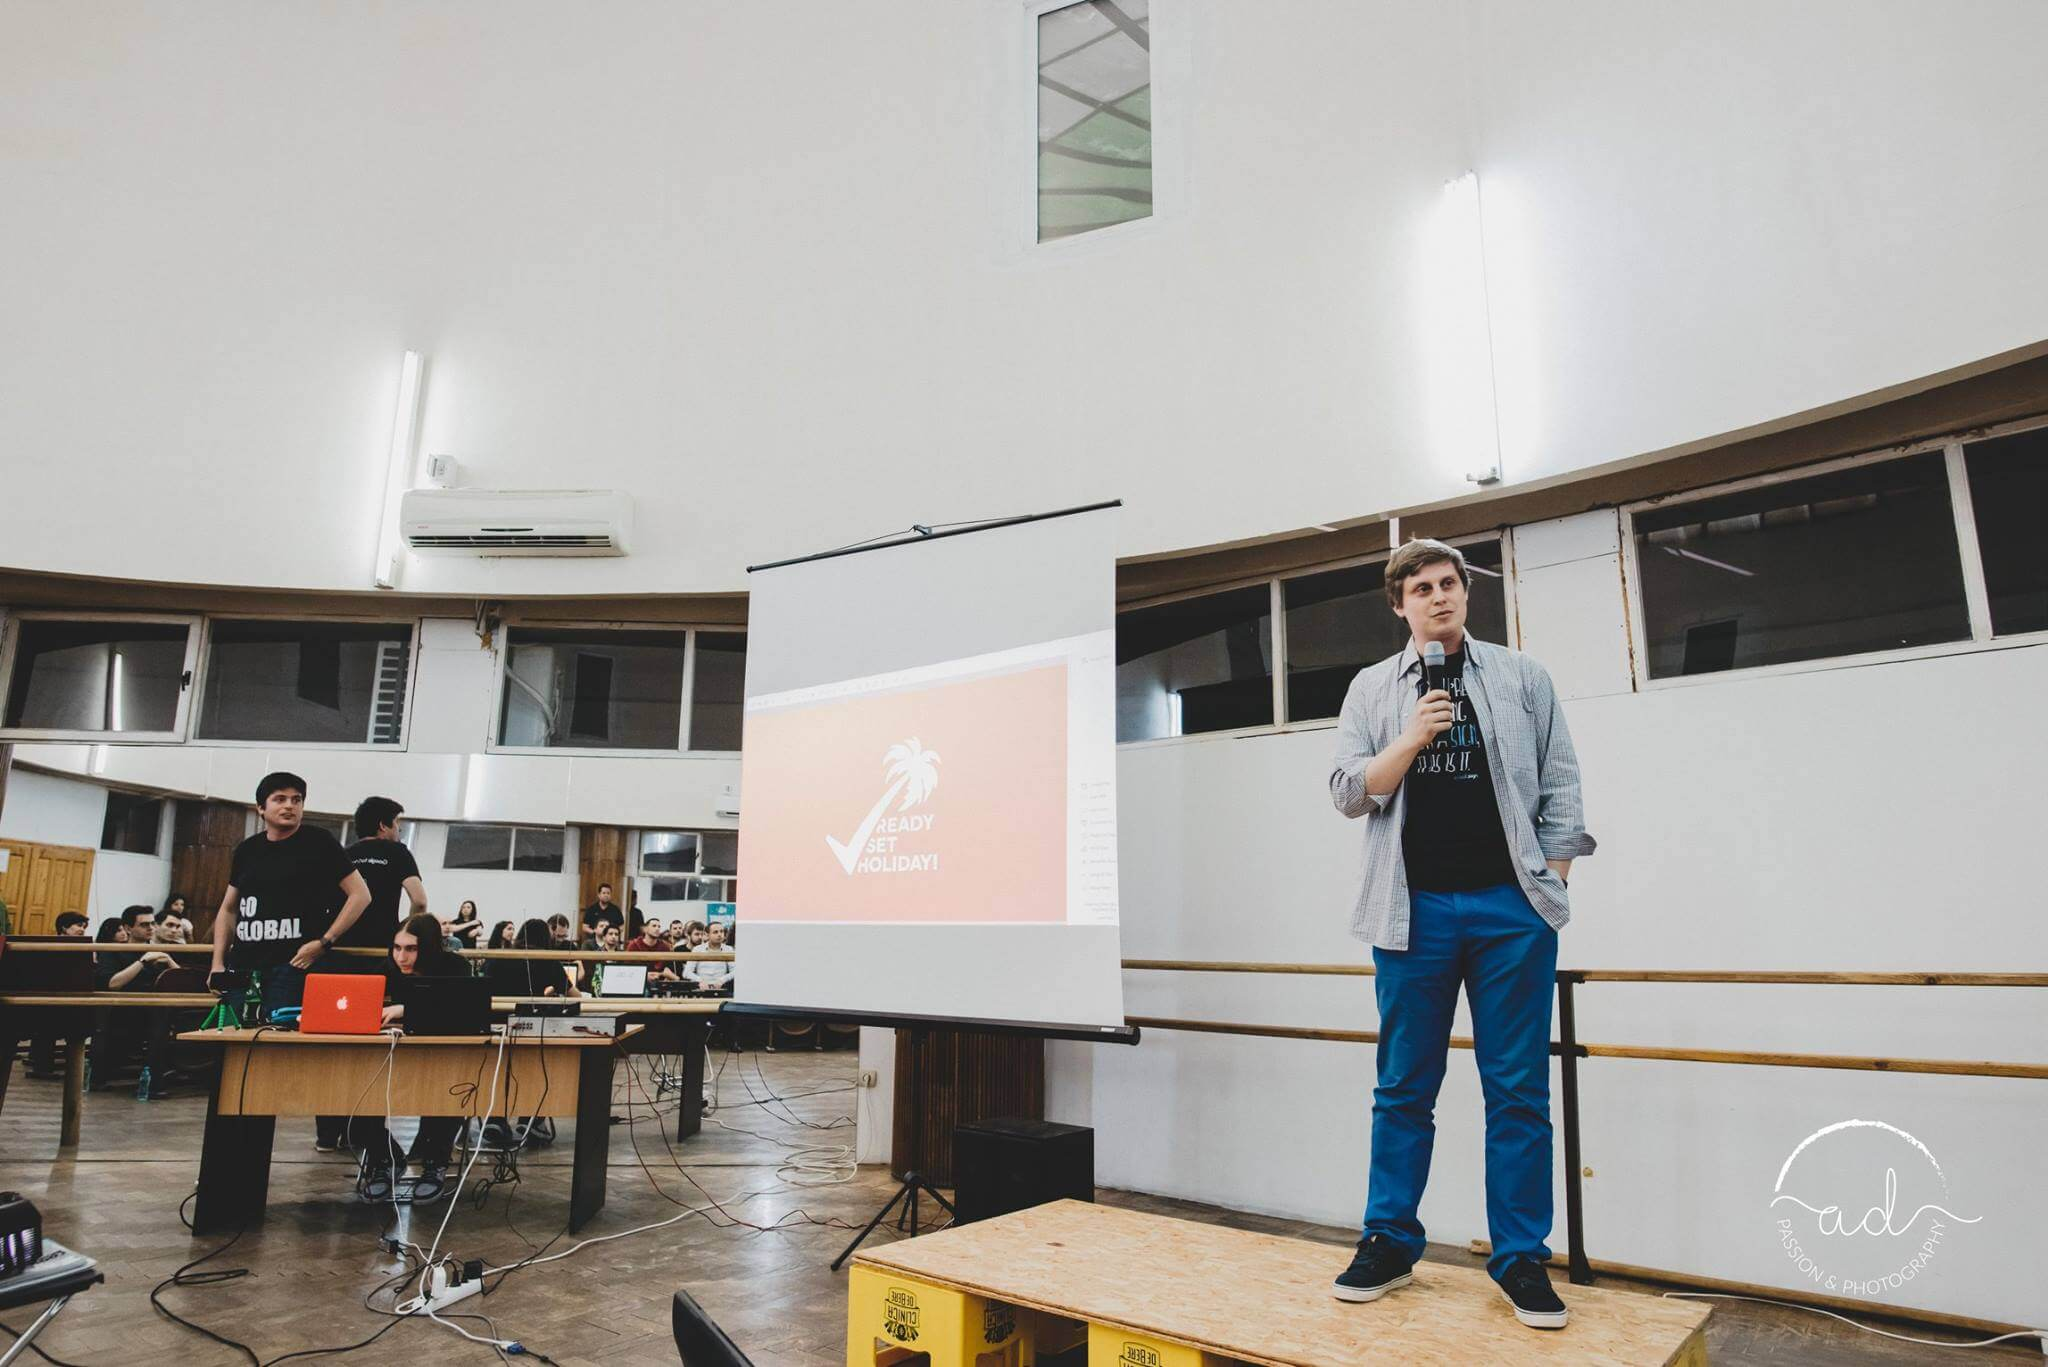 Timisoara Startups Demo Day – The road to 1 million downloads